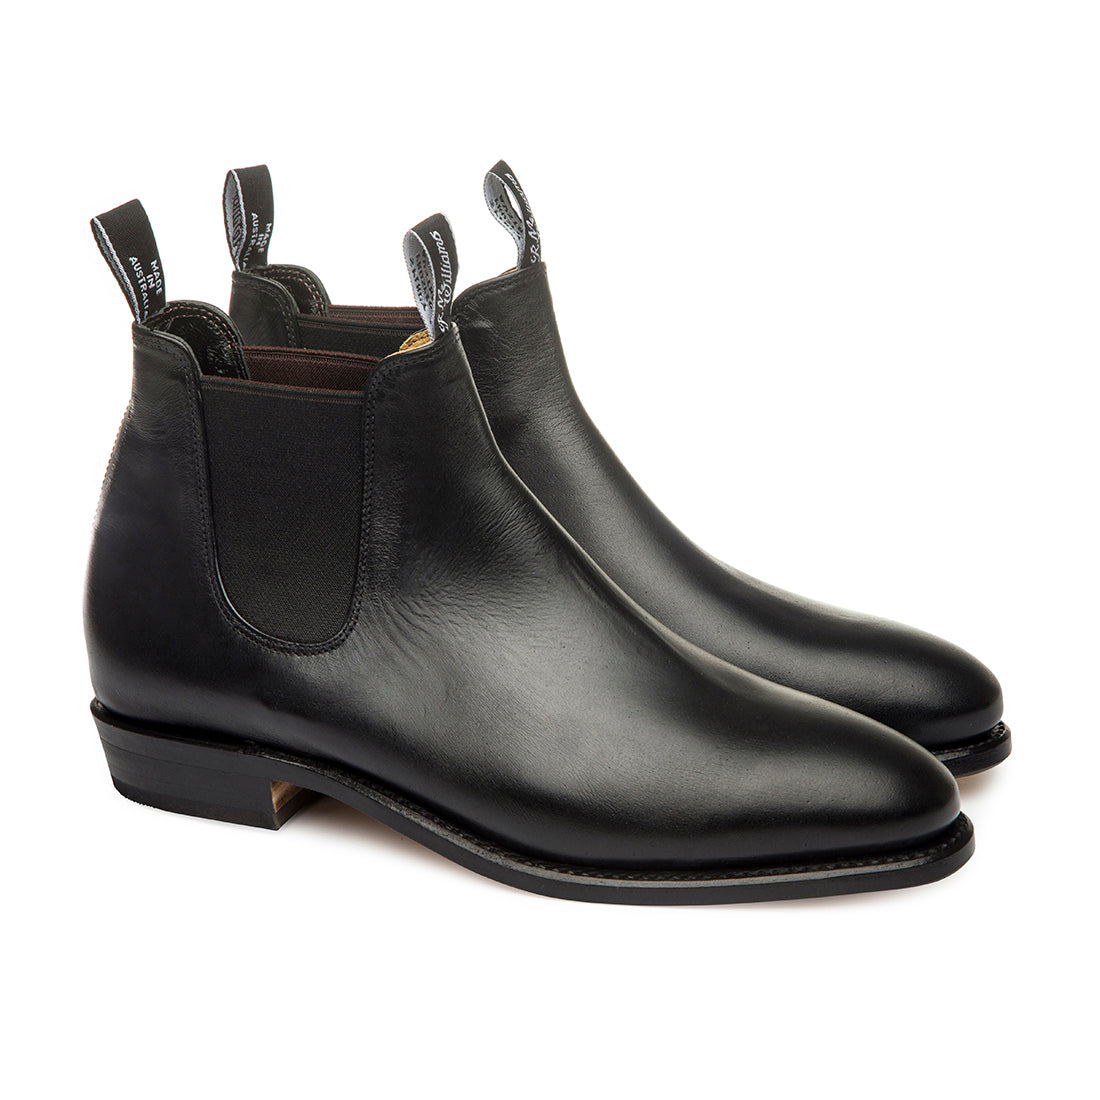 R.M. Williams Classic Adelaide Boot - D Fit - Black